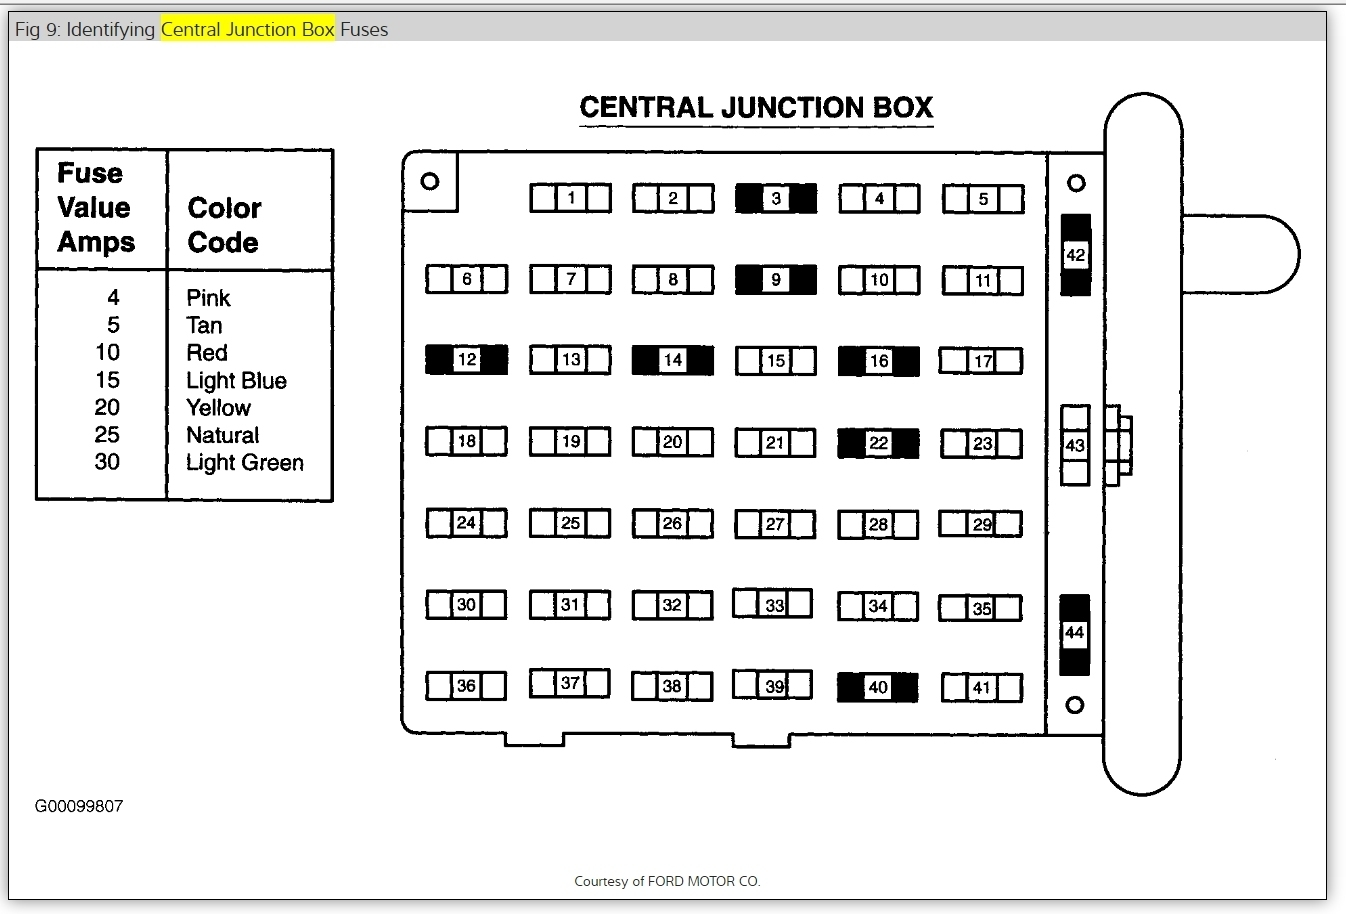 original 1999 ford mustang fuse box layout electrical problem 1999 ford 1998 mustang fuse box diagram at bayanpartner.co